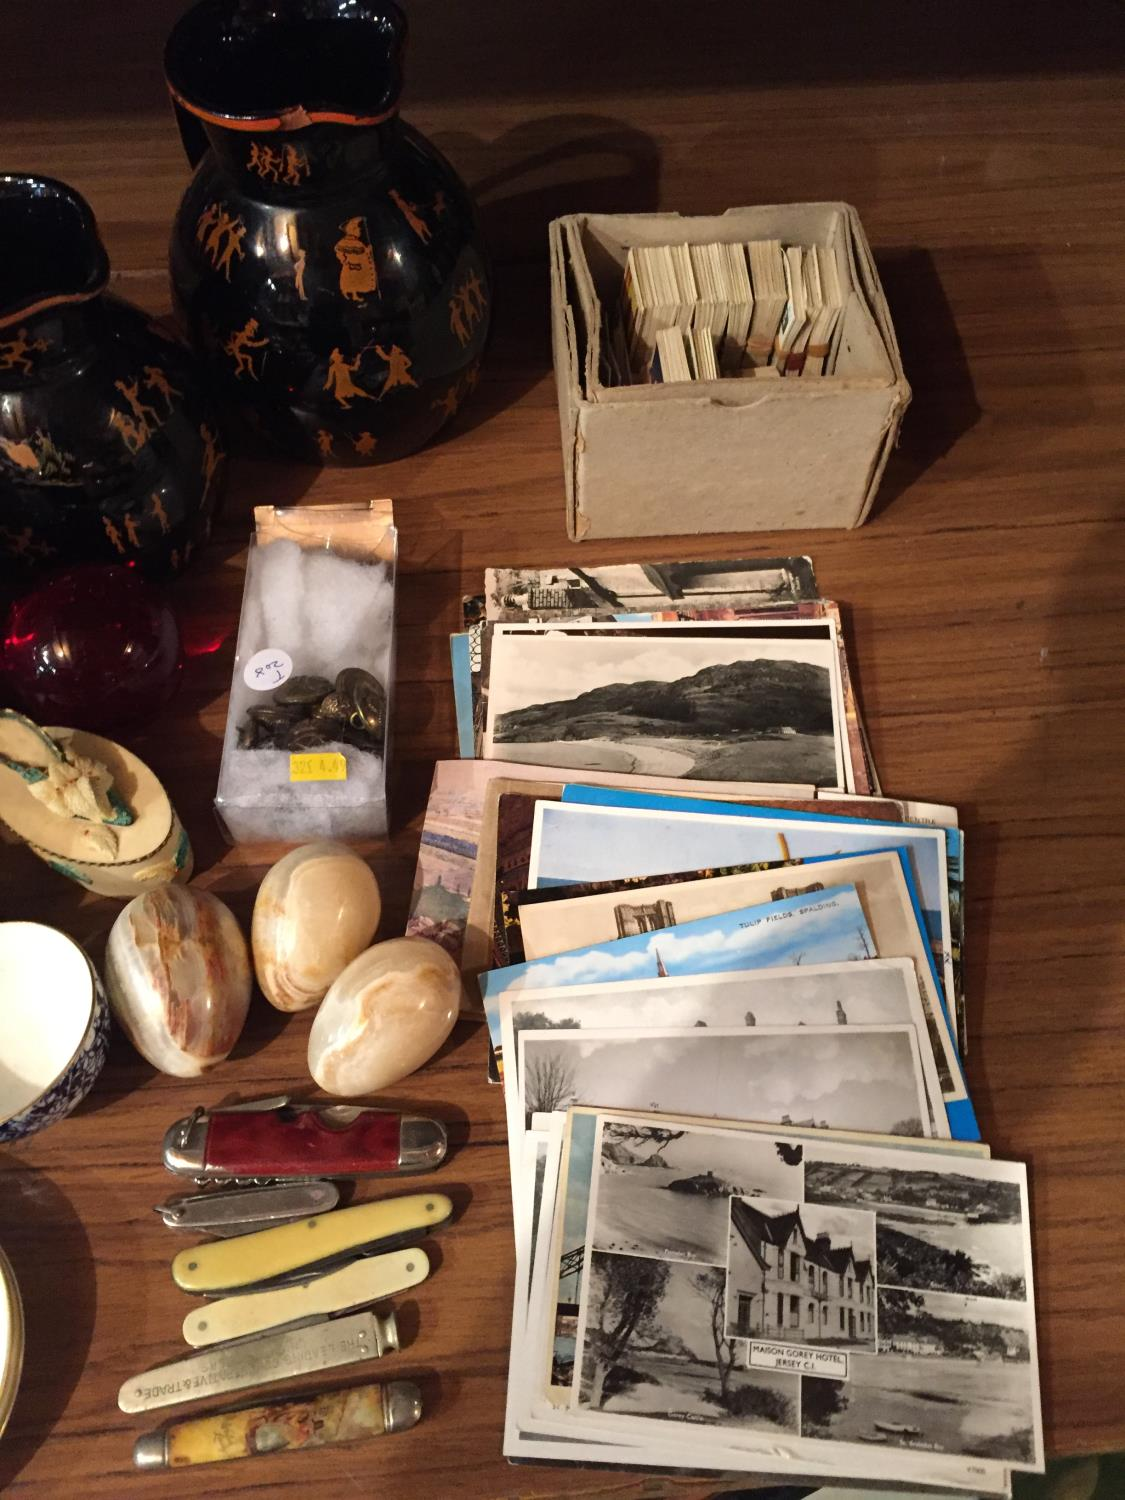 A COLLECTION OF CERAMICS TO INCLUDE BESWICK, WORCESTER PIN TRAYS CIGARETTE CARDS, POSTCARDS ETC - Image 8 of 10